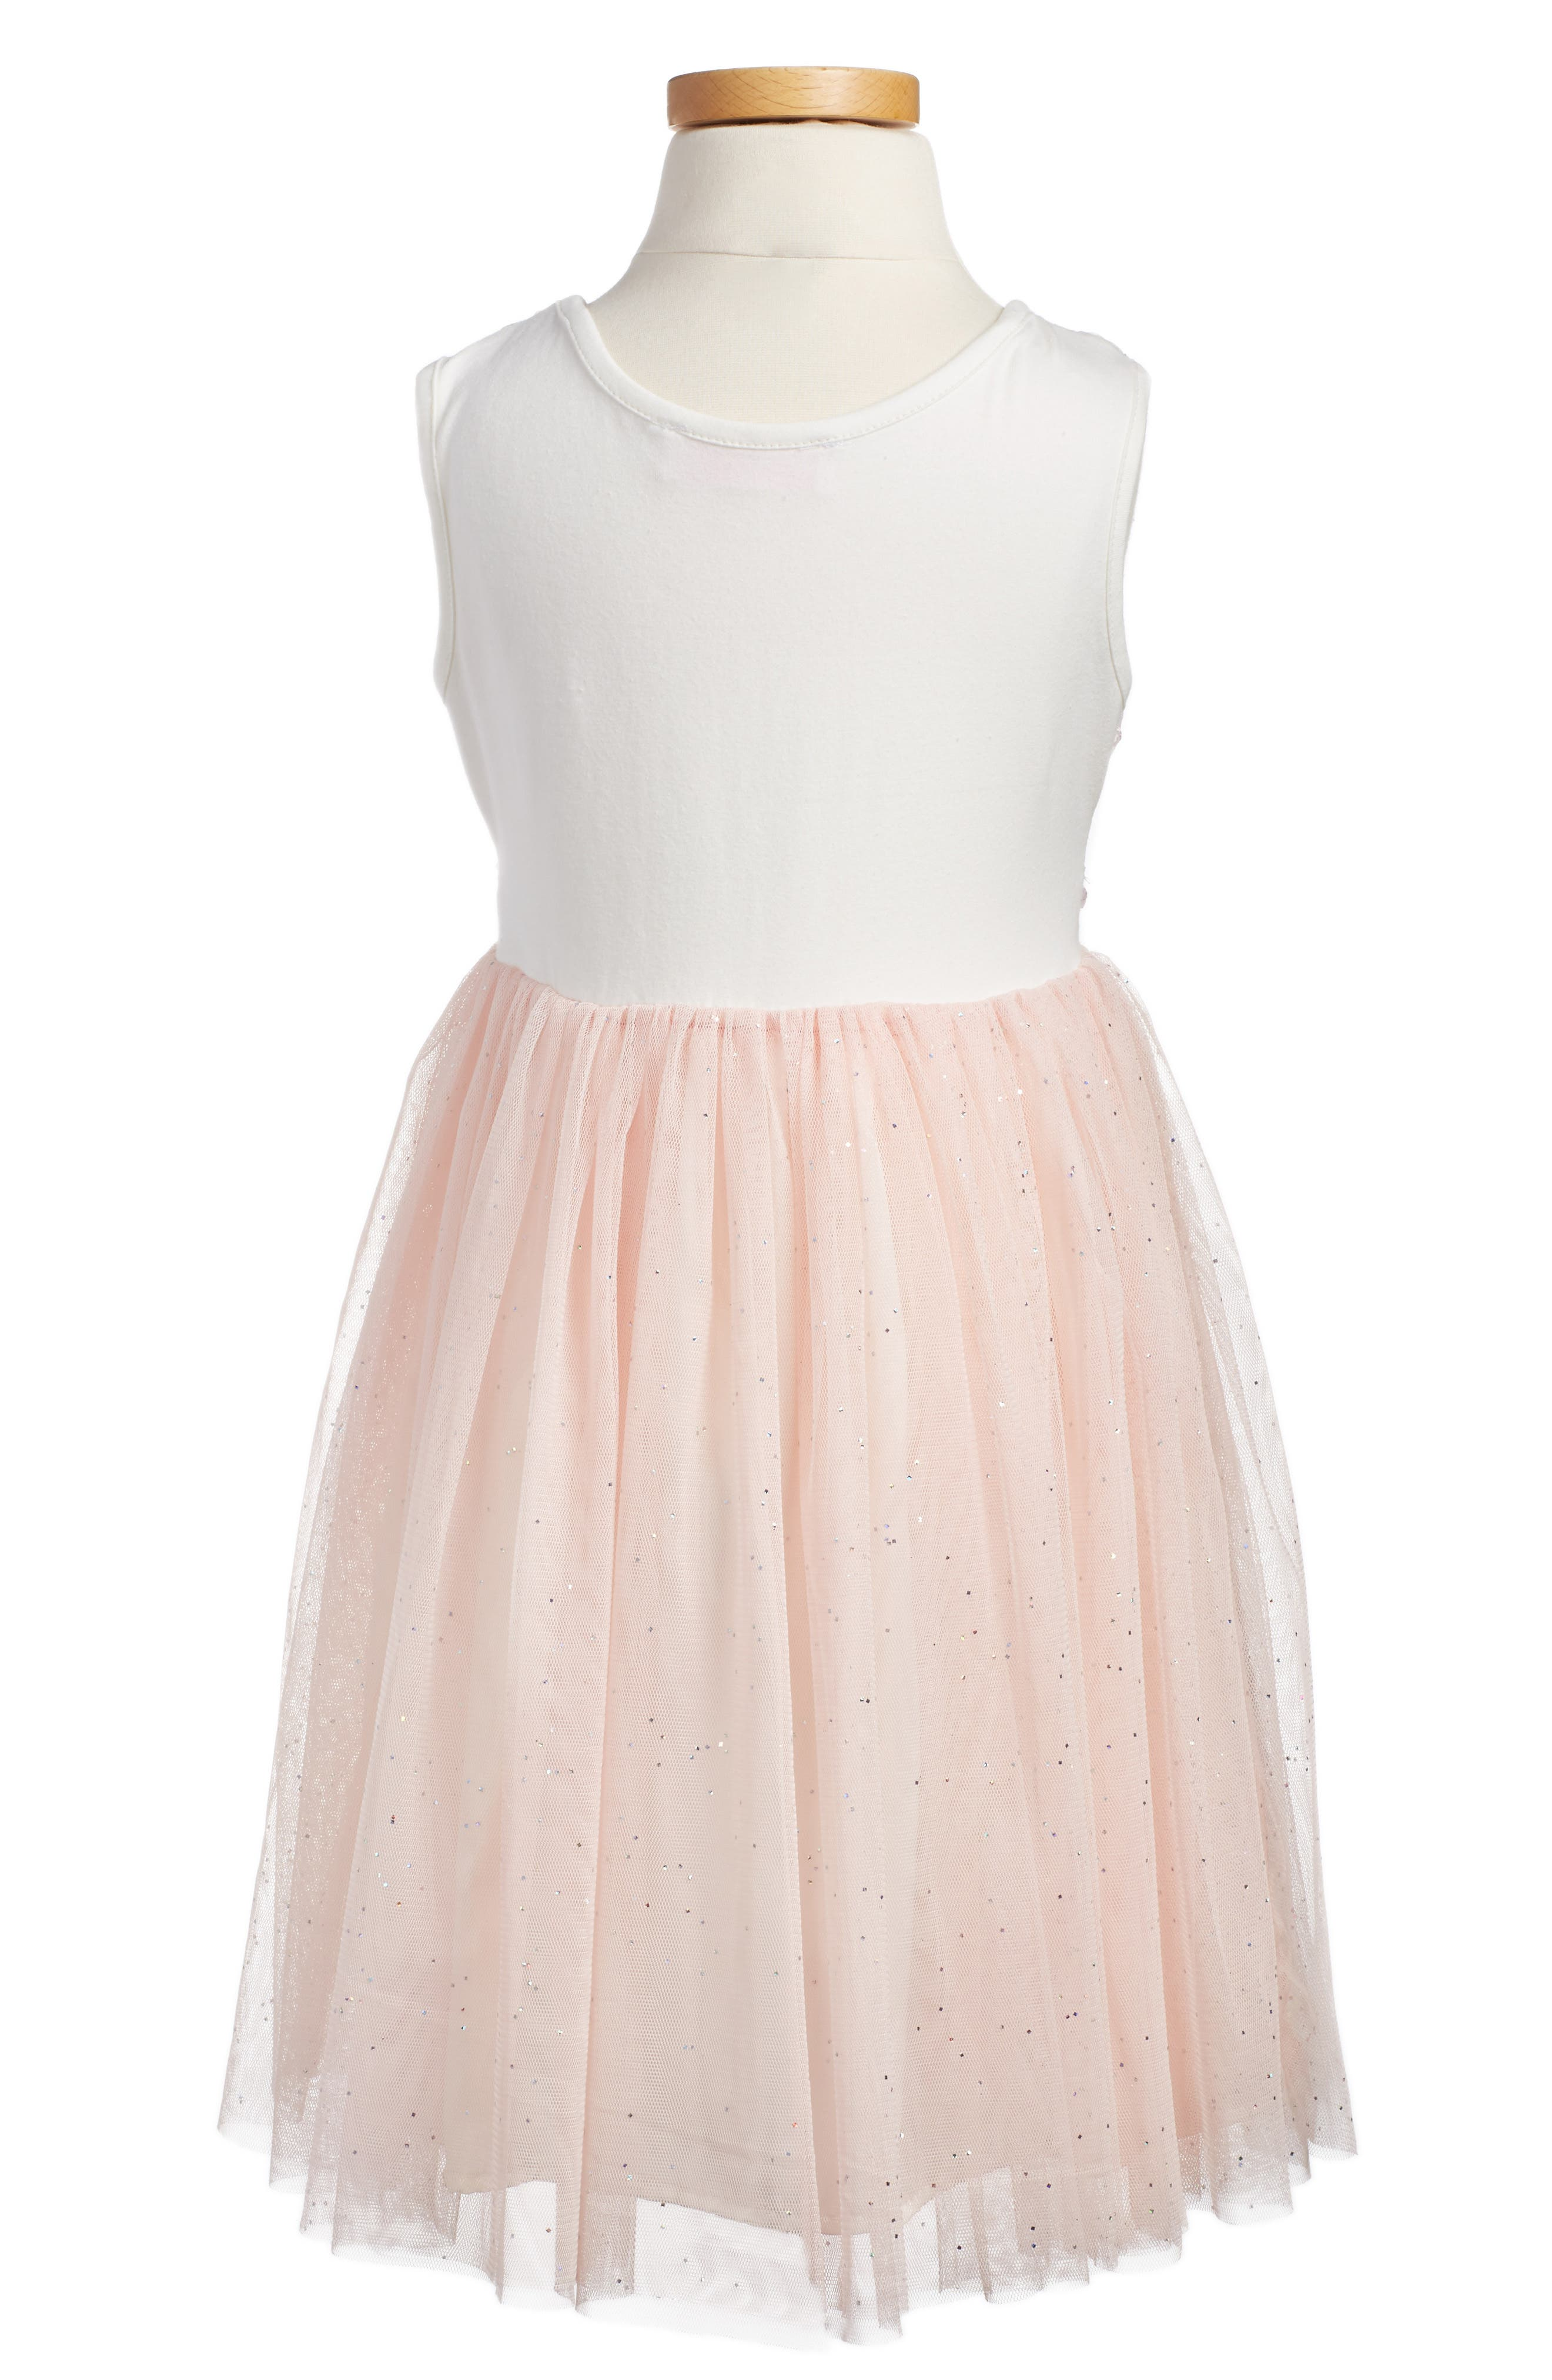 POPATU, Embroidered Tulle Dress, Alternate thumbnail 3, color, PEACH